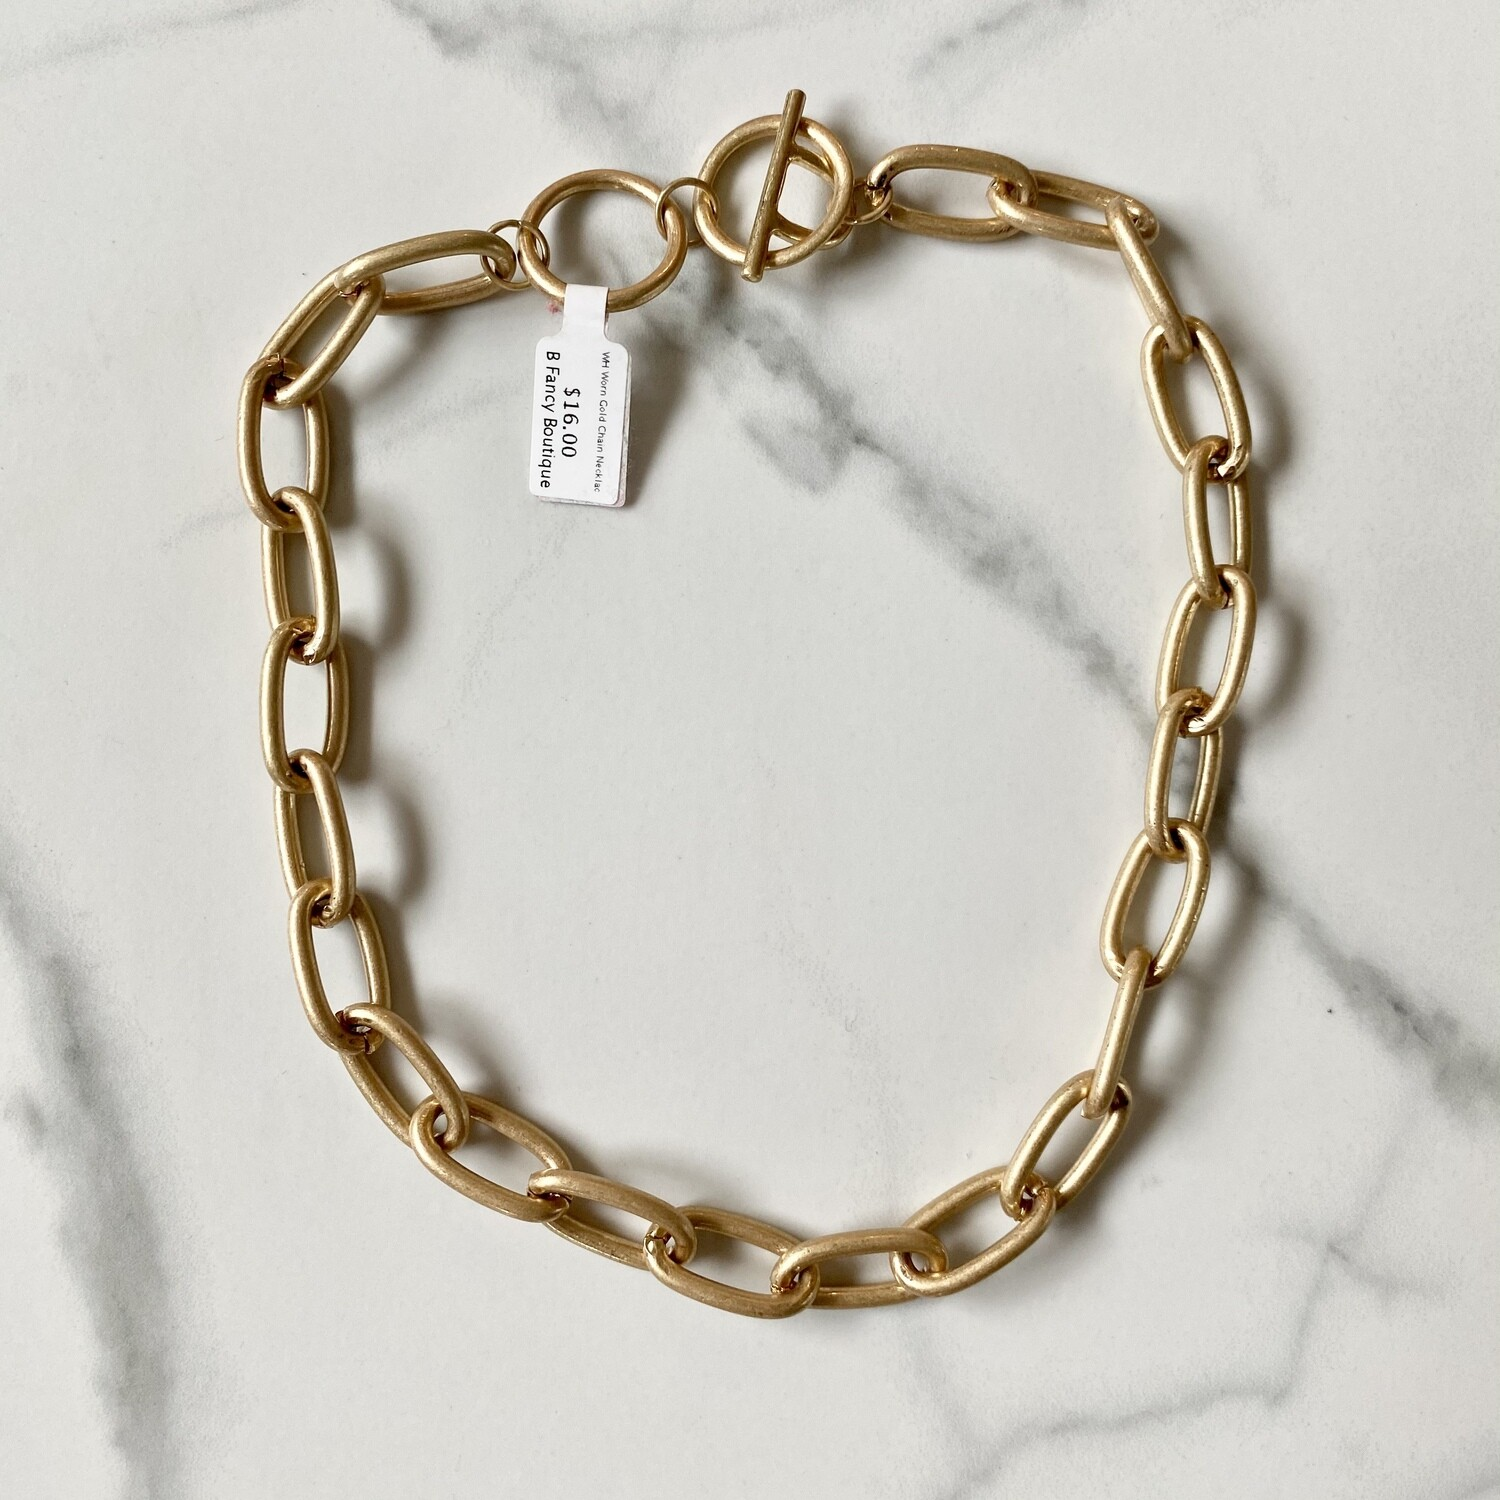 WH Worn Gold Chain Necklace